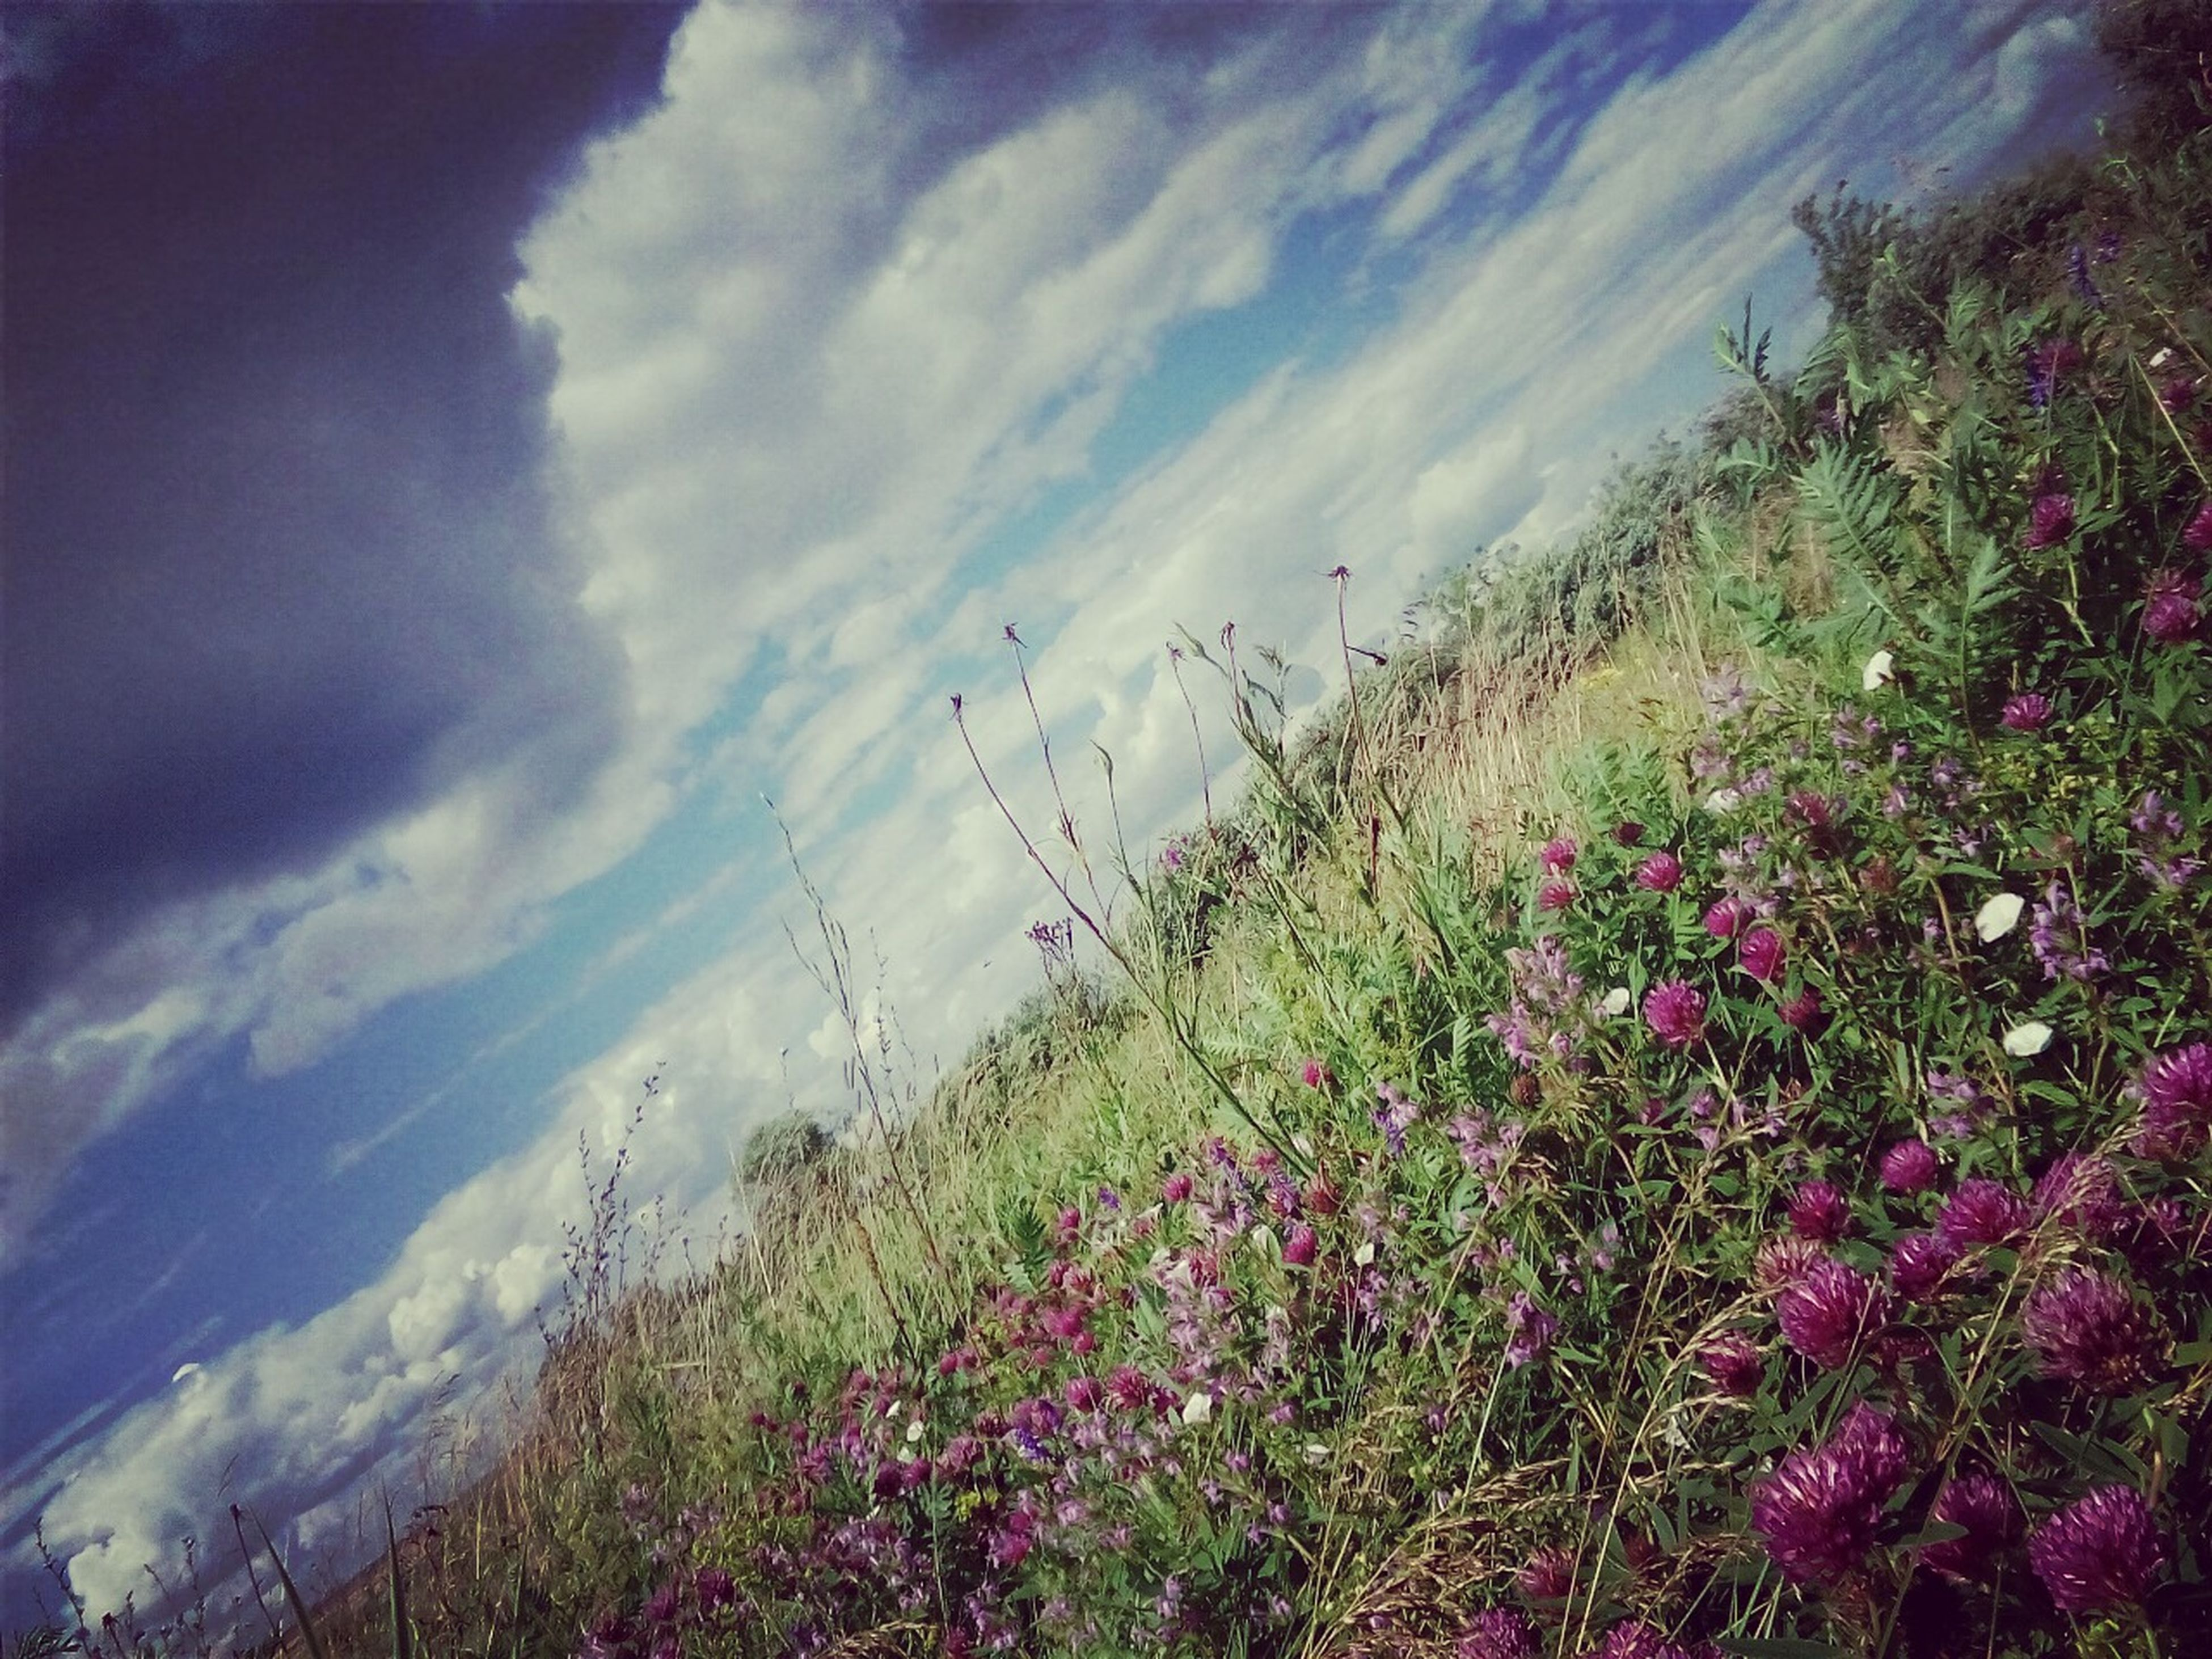 flower, sky, growth, beauty in nature, plant, cloud - sky, nature, tranquil scene, tranquility, freshness, scenics, field, fragility, blooming, cloudy, landscape, cloud, growing, outdoors, day, in bloom, no people, purple, non-urban scene, green color, idyllic, grass, petal, pink color, non urban scene, blossom, remote, botany